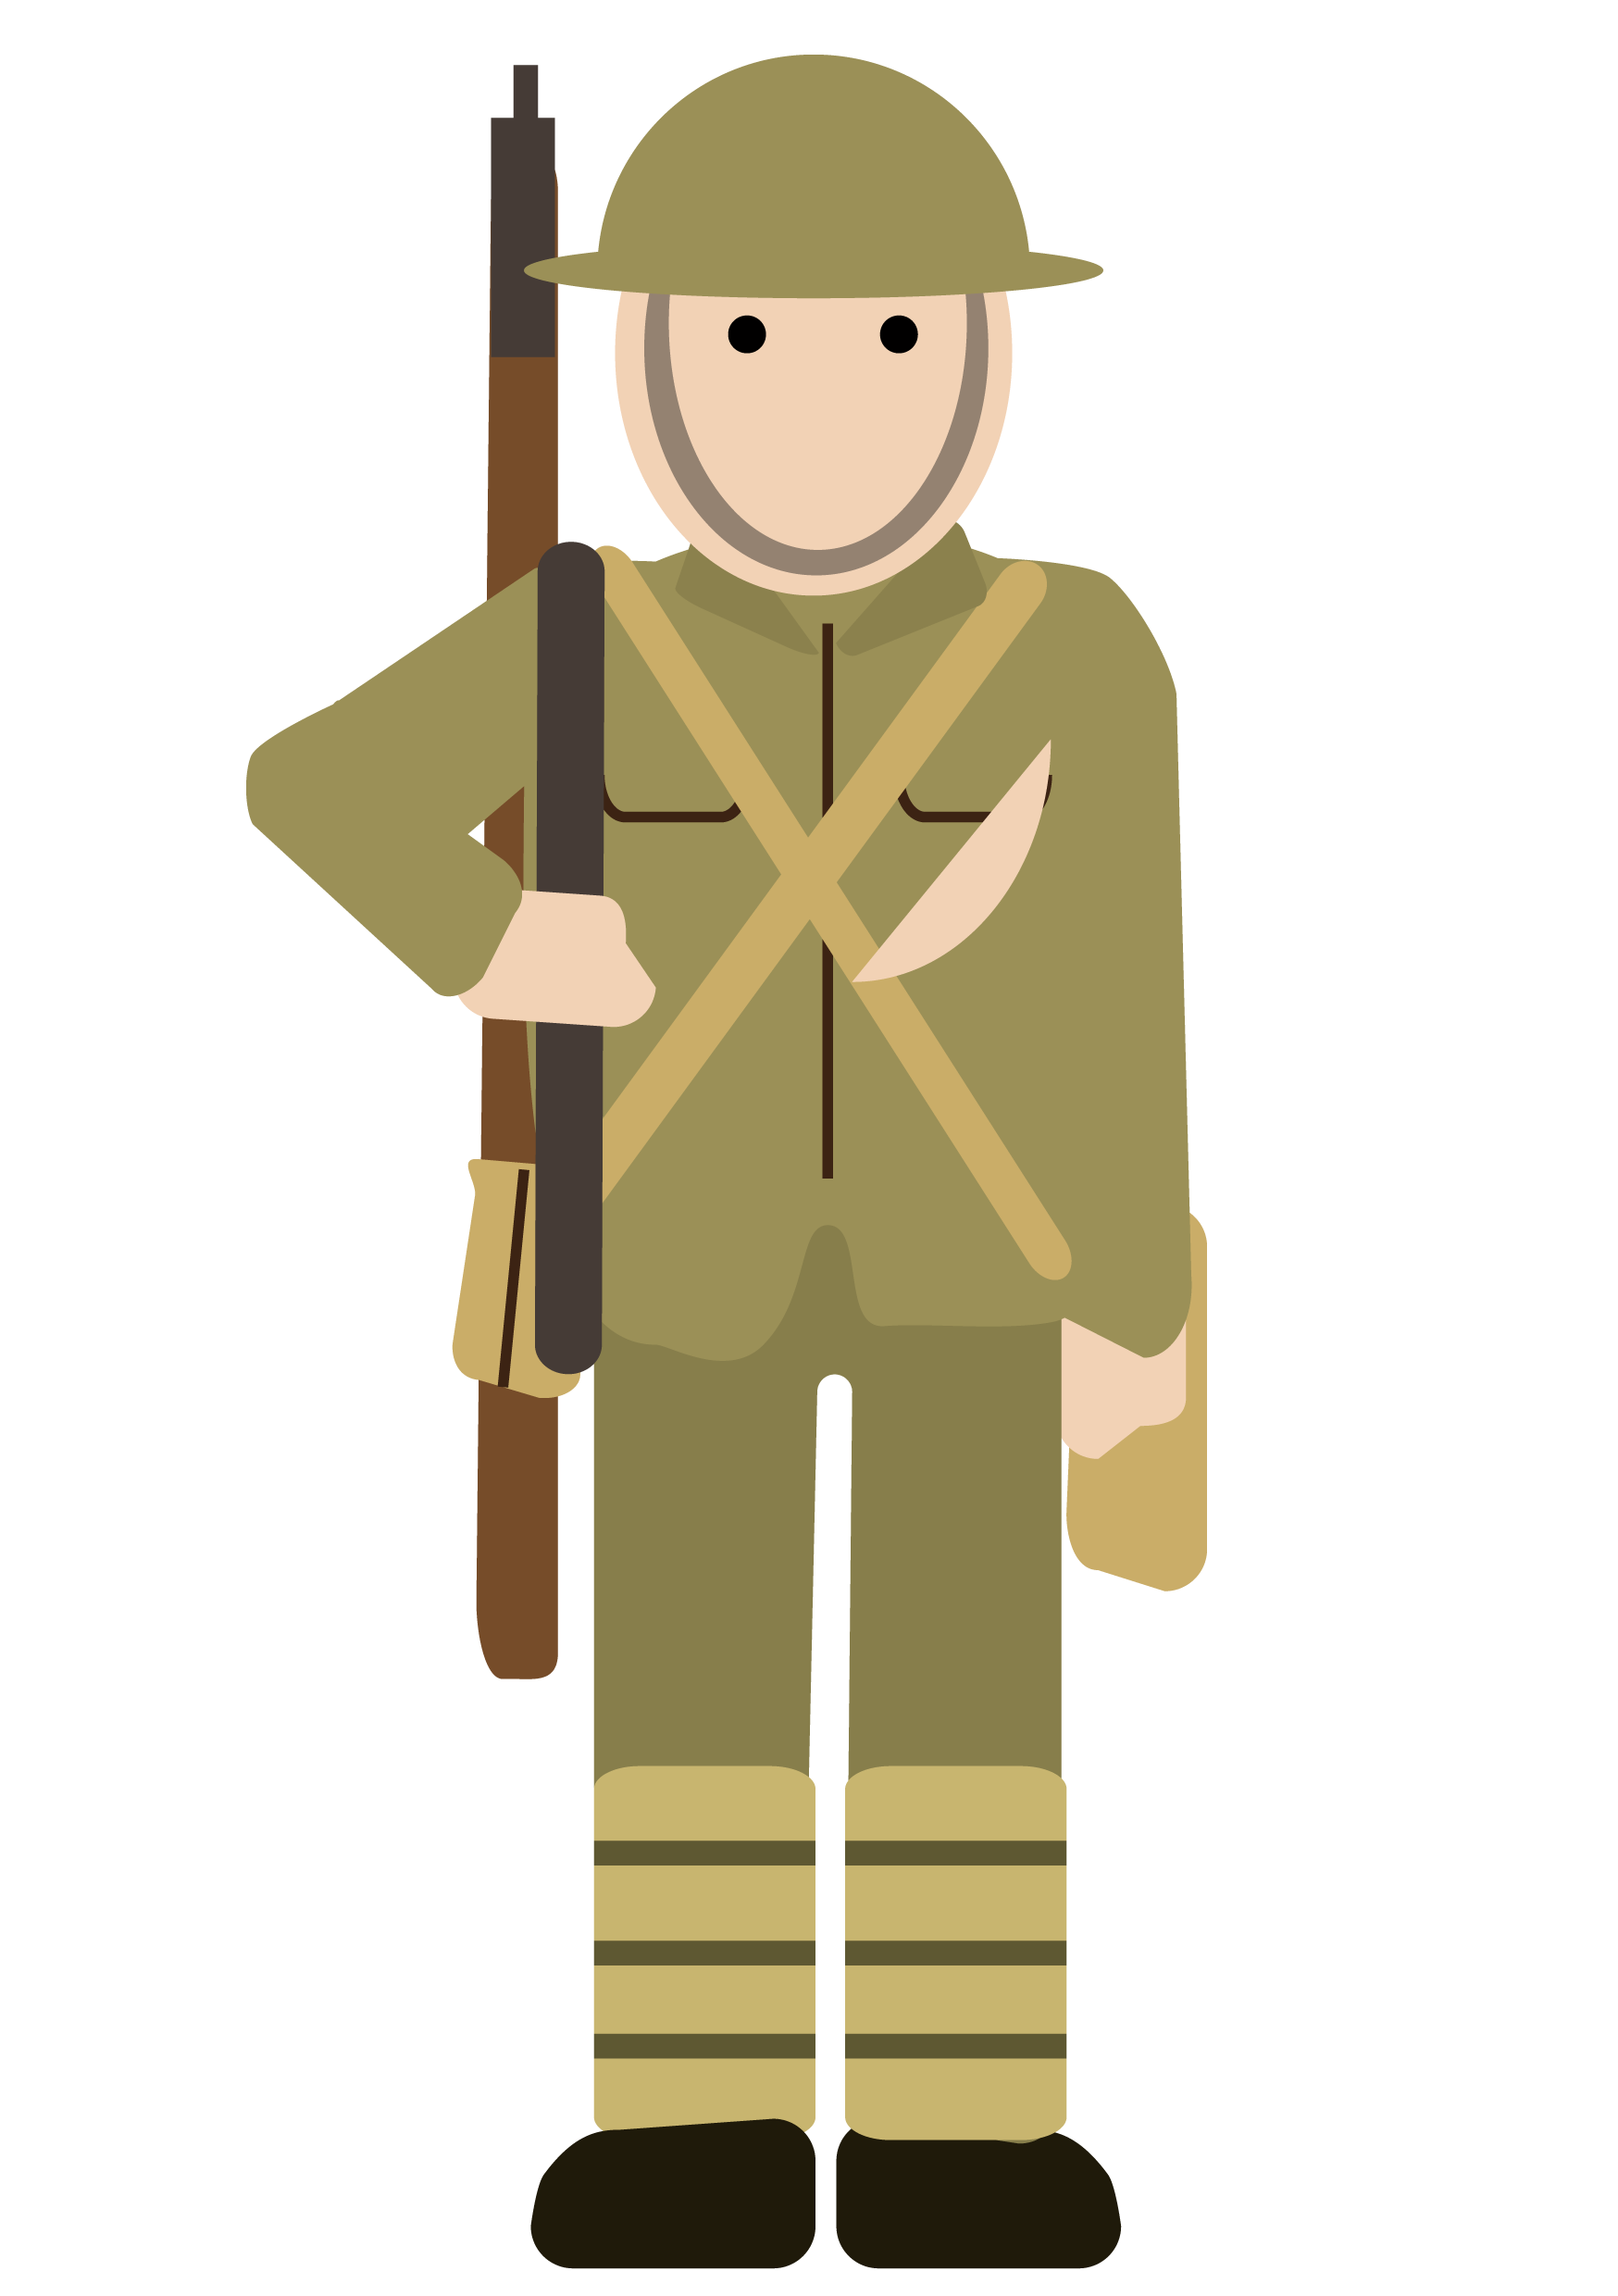 soldier clipart easy